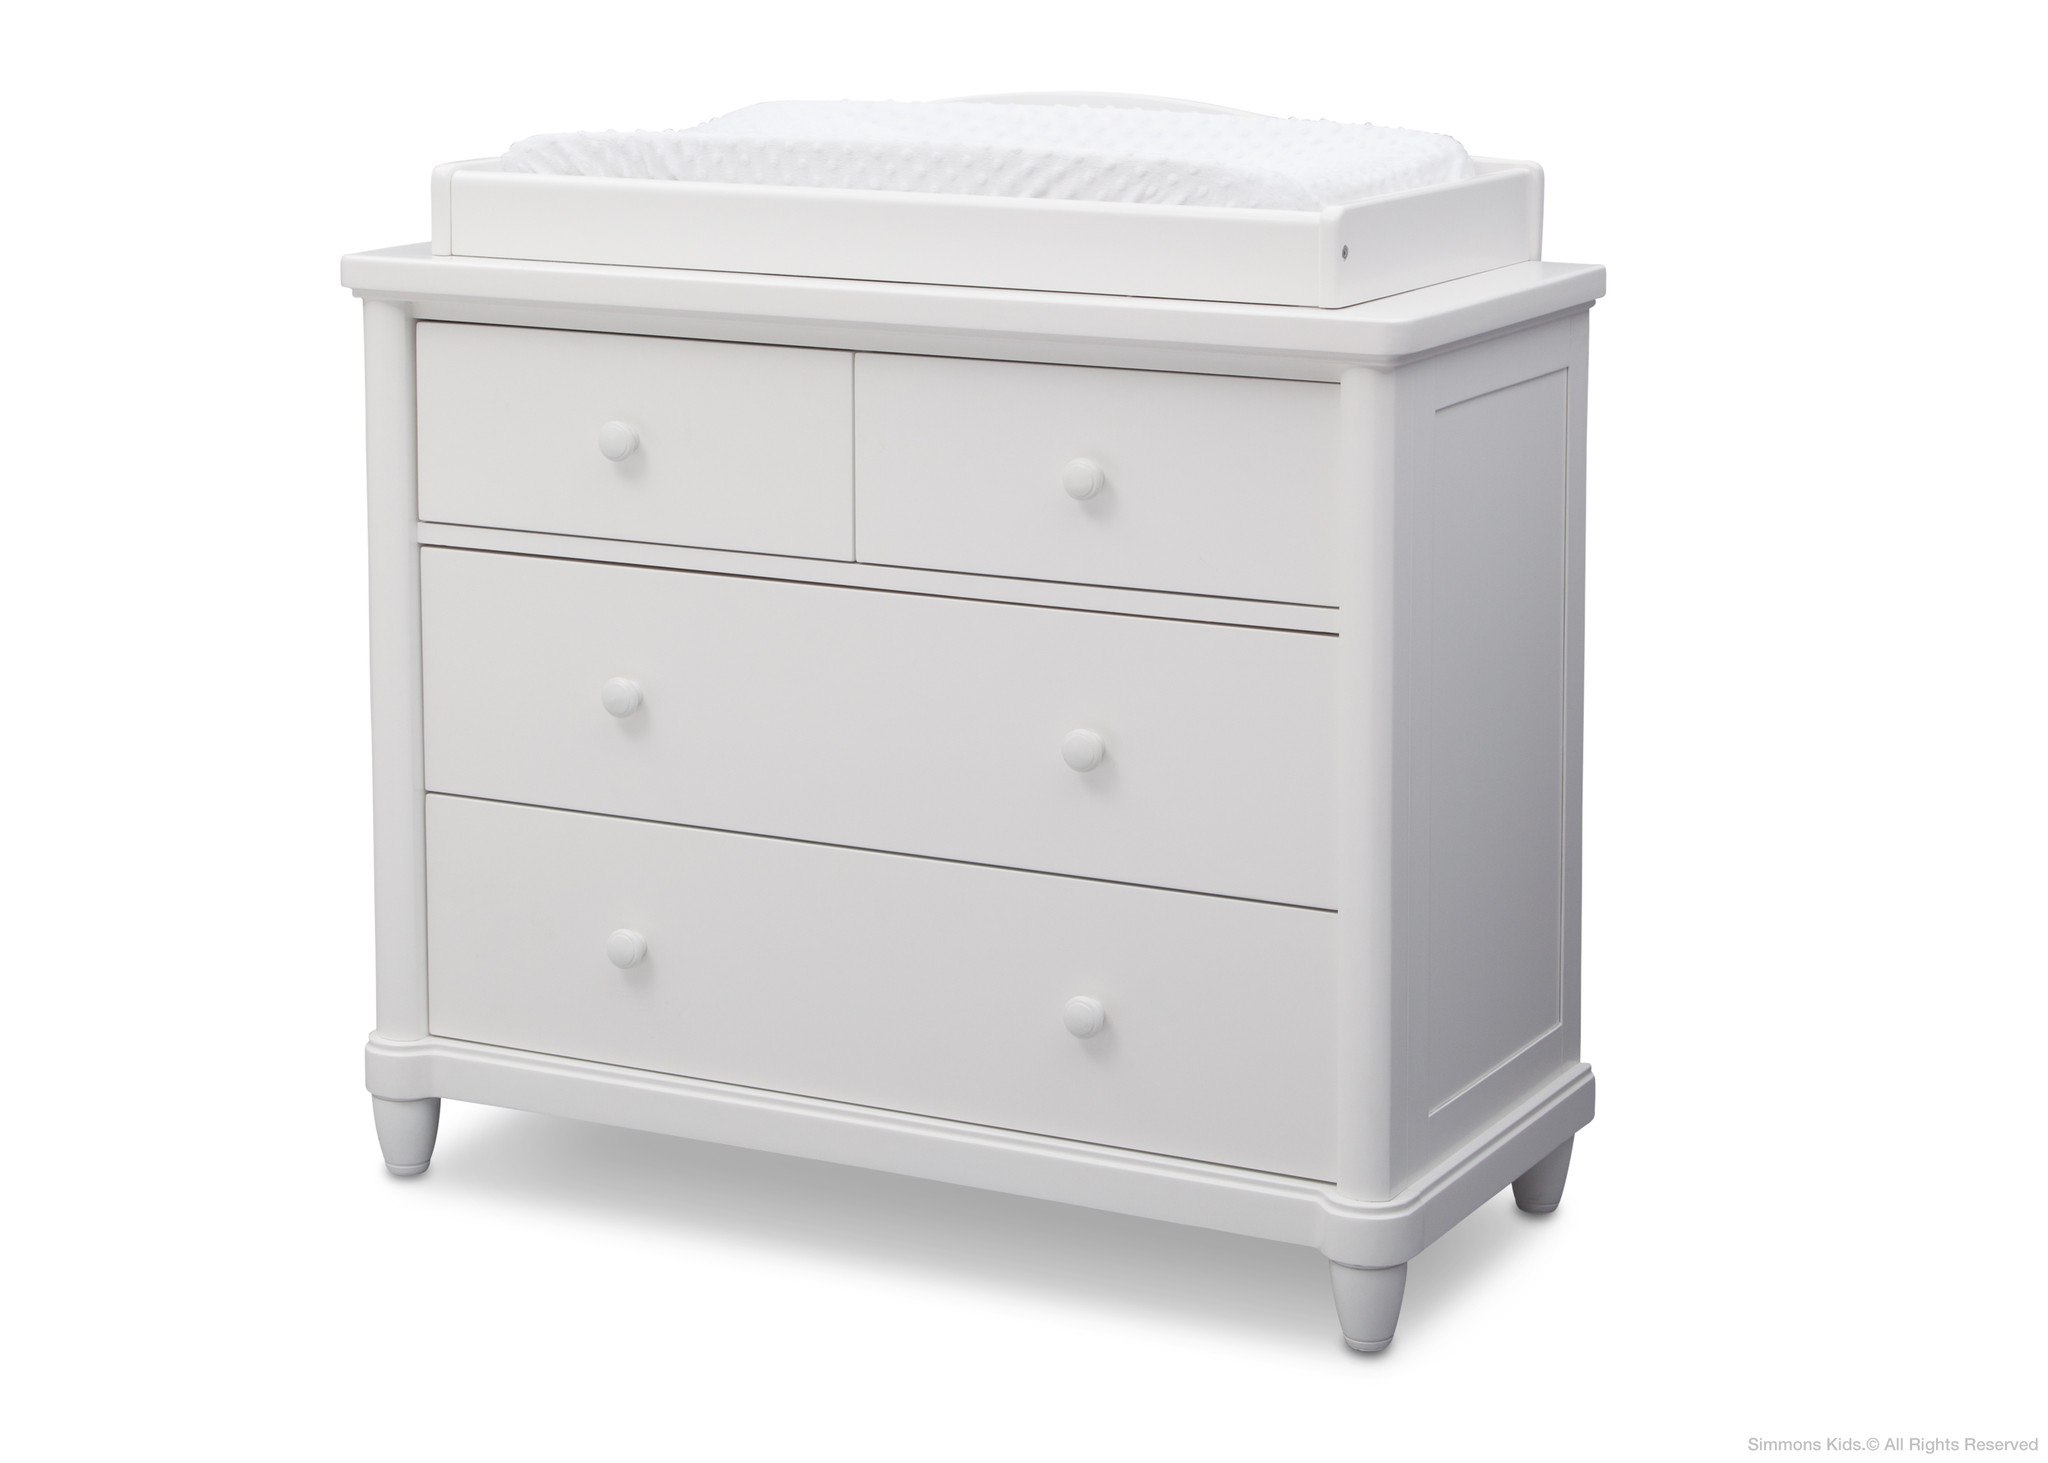 Unique Furniture Design Cabinet with 4 Drawer Dresser for Bedroom Ideas: Unique White 4 Drawer Dresser For Home Living Room Ideas